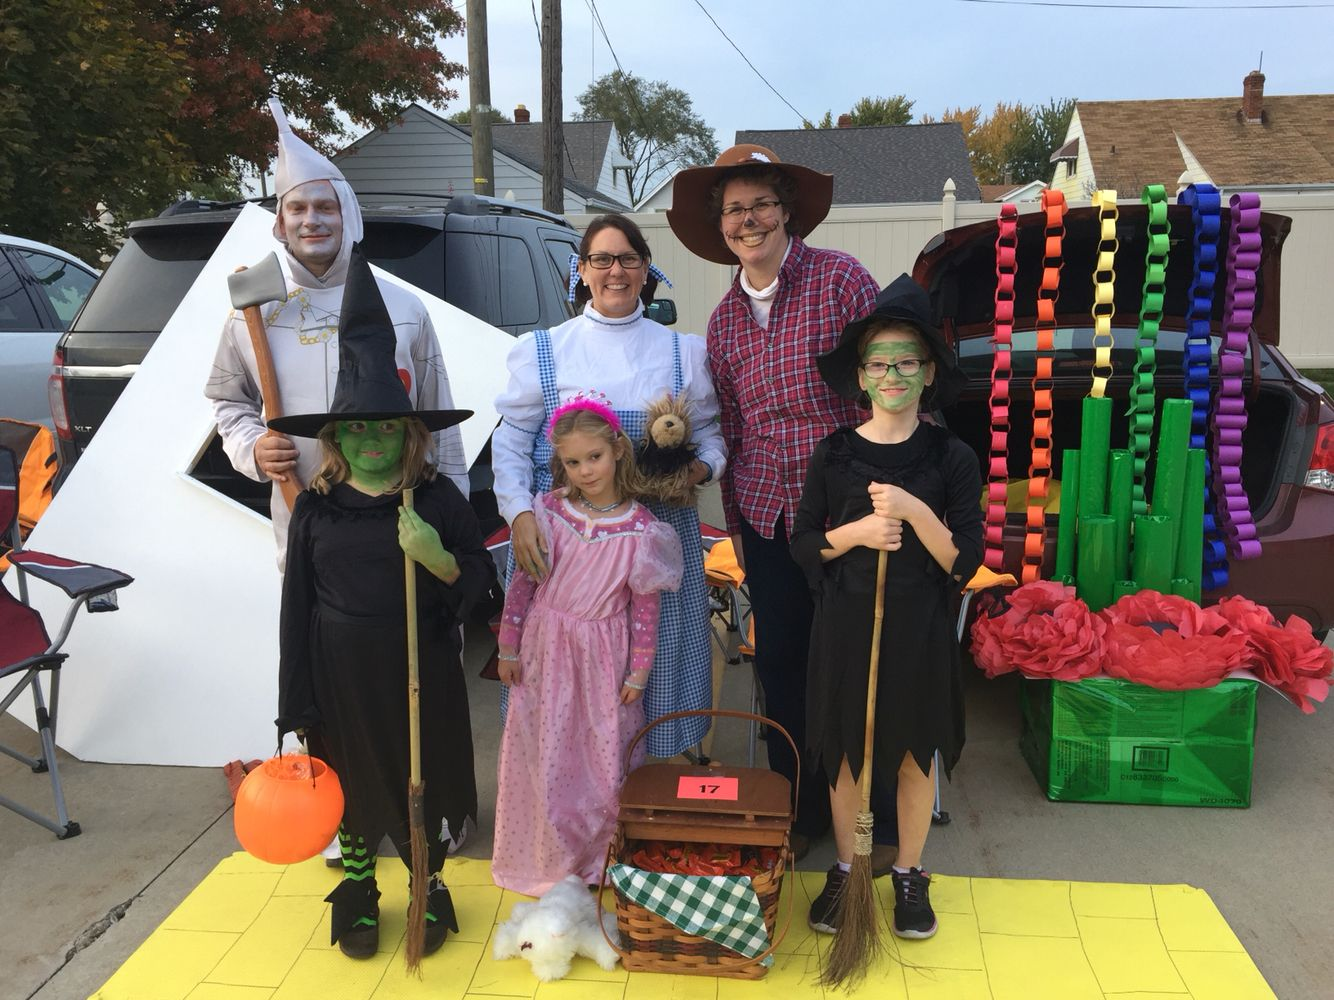 Wizard of Oz Trunk or treat Trunk or treat ideas Pinterest Diy - Wizard Of Oz Halloween Decorations